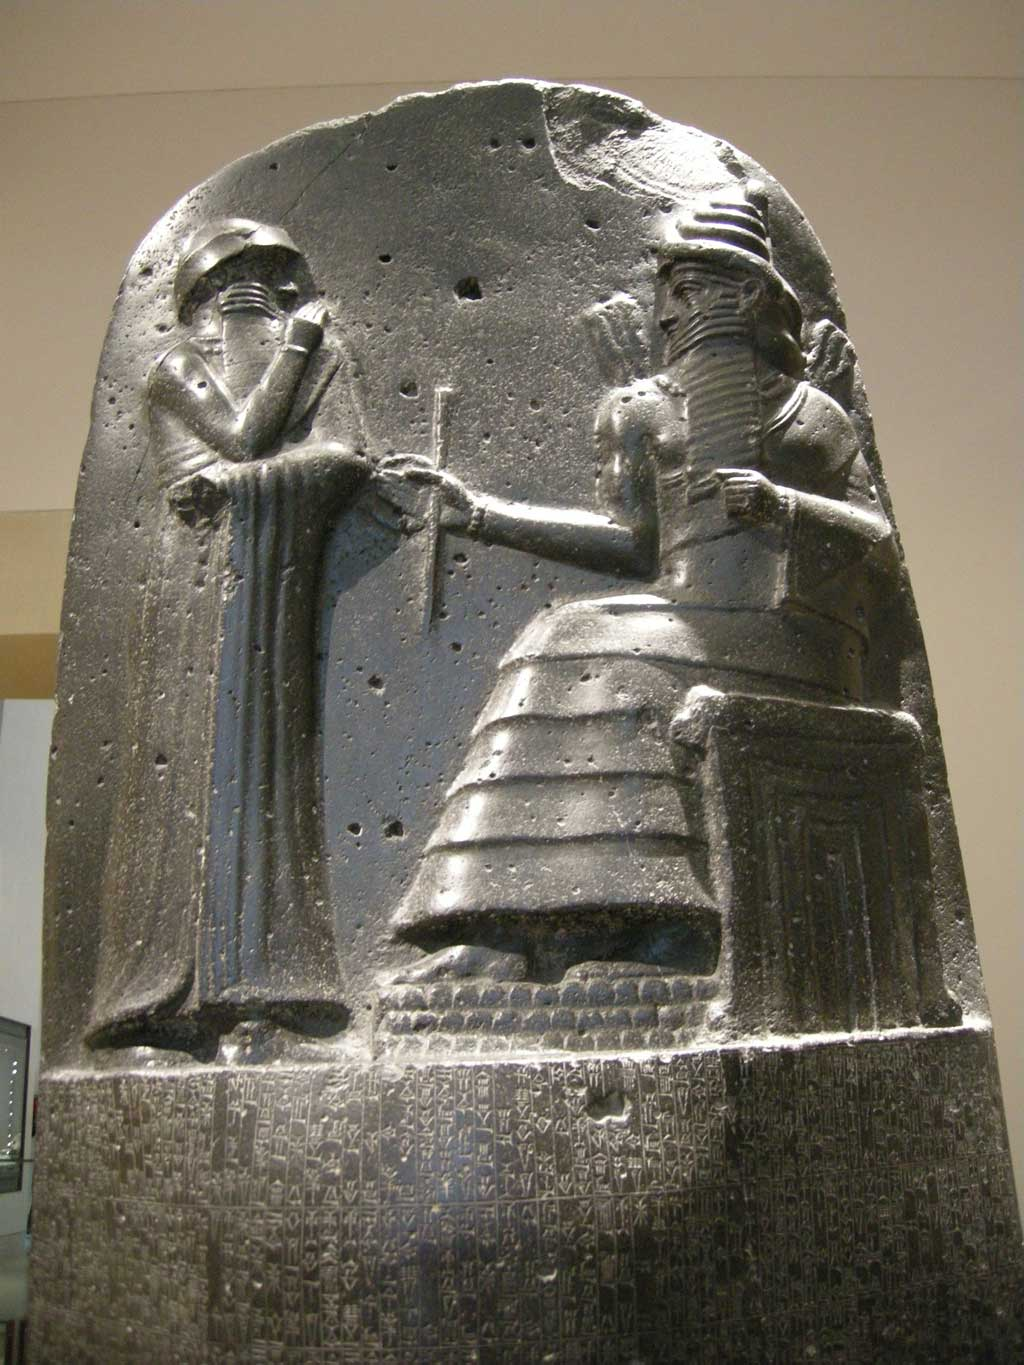 Picture of Hammurabi's Code. A dark cylindrical stone statue with a carving on the upper portion of the Code. Here, one sees a representation of king Hammurabi receiving his law code from the god Shamash who sits before him. Both are two-dimensional in form.